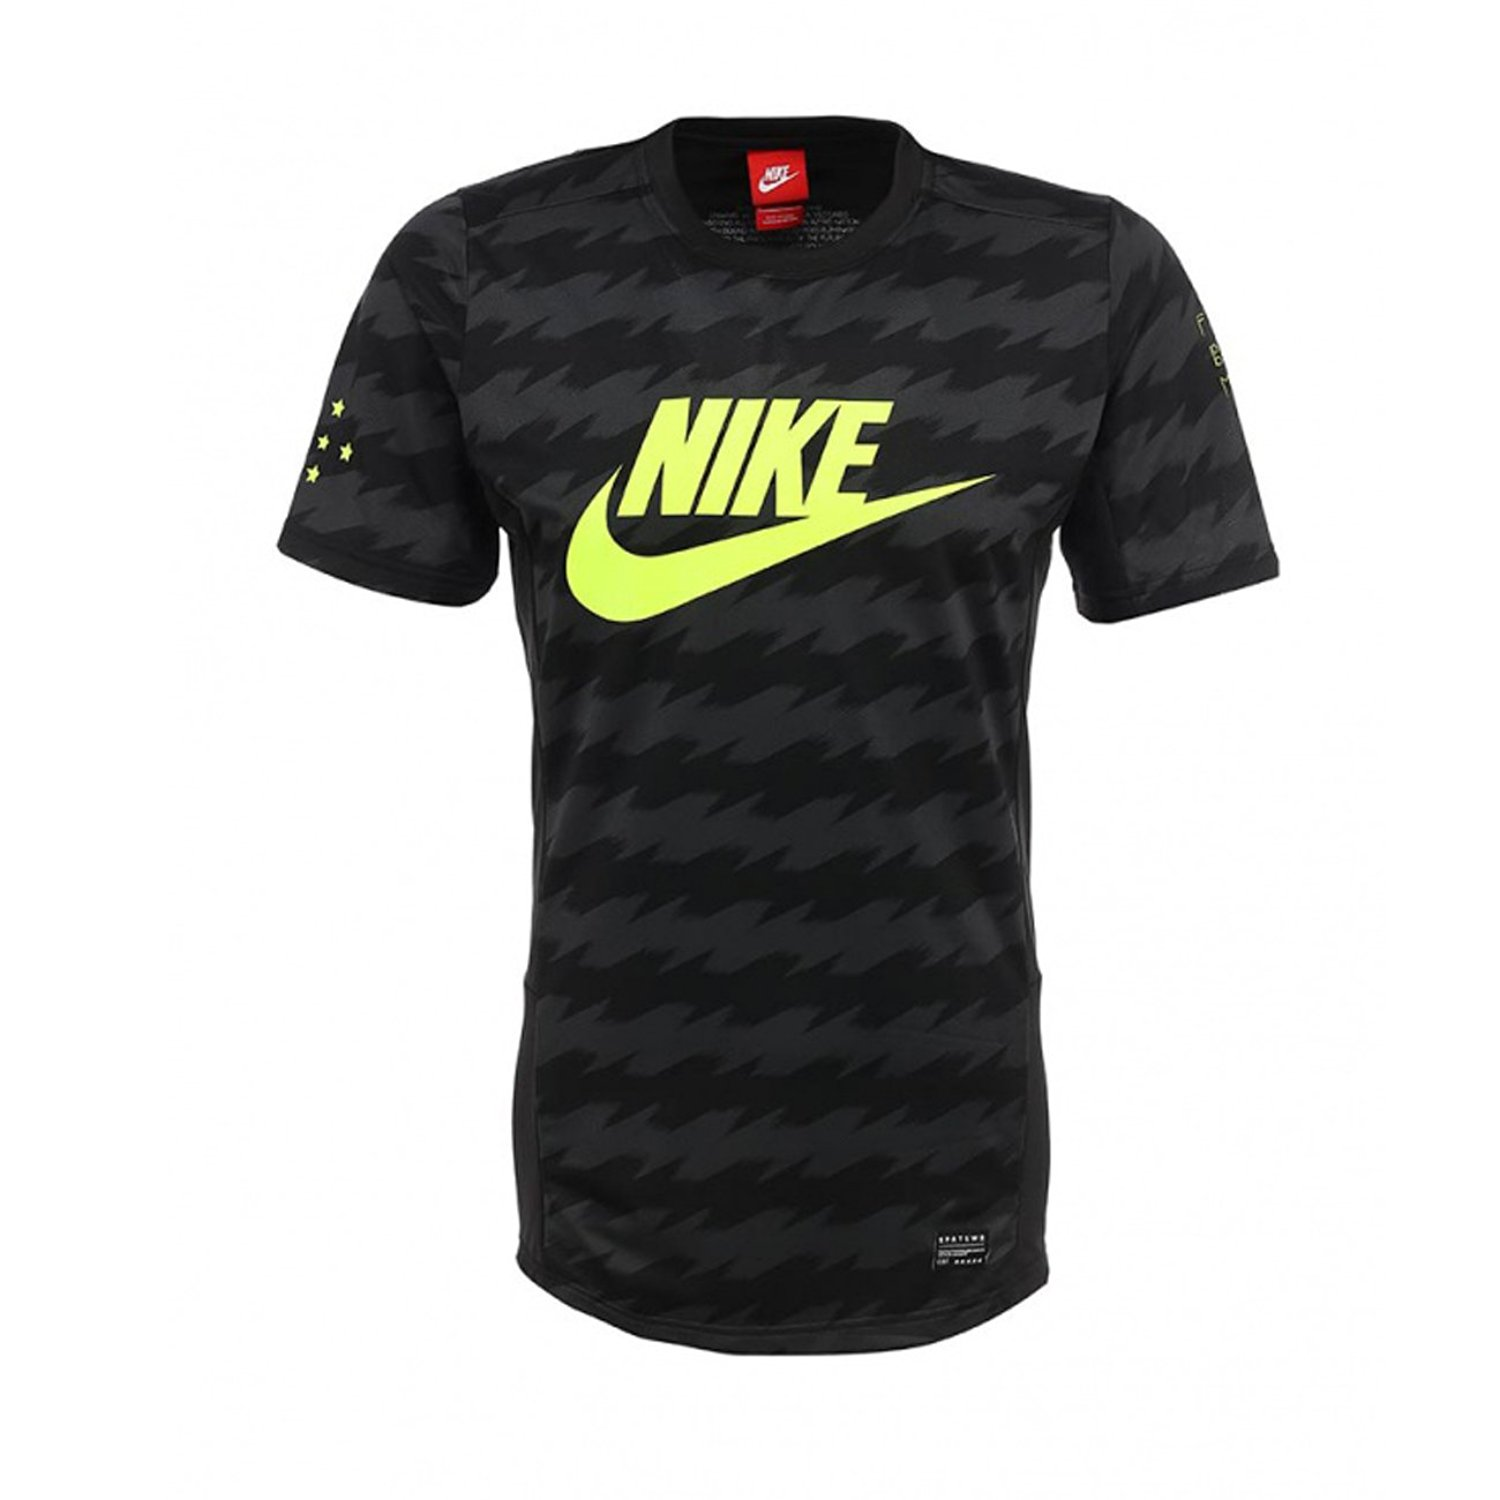 20df9ad3a Cheap Nike Soccer Shirt, find Nike Soccer Shirt deals on line at ...